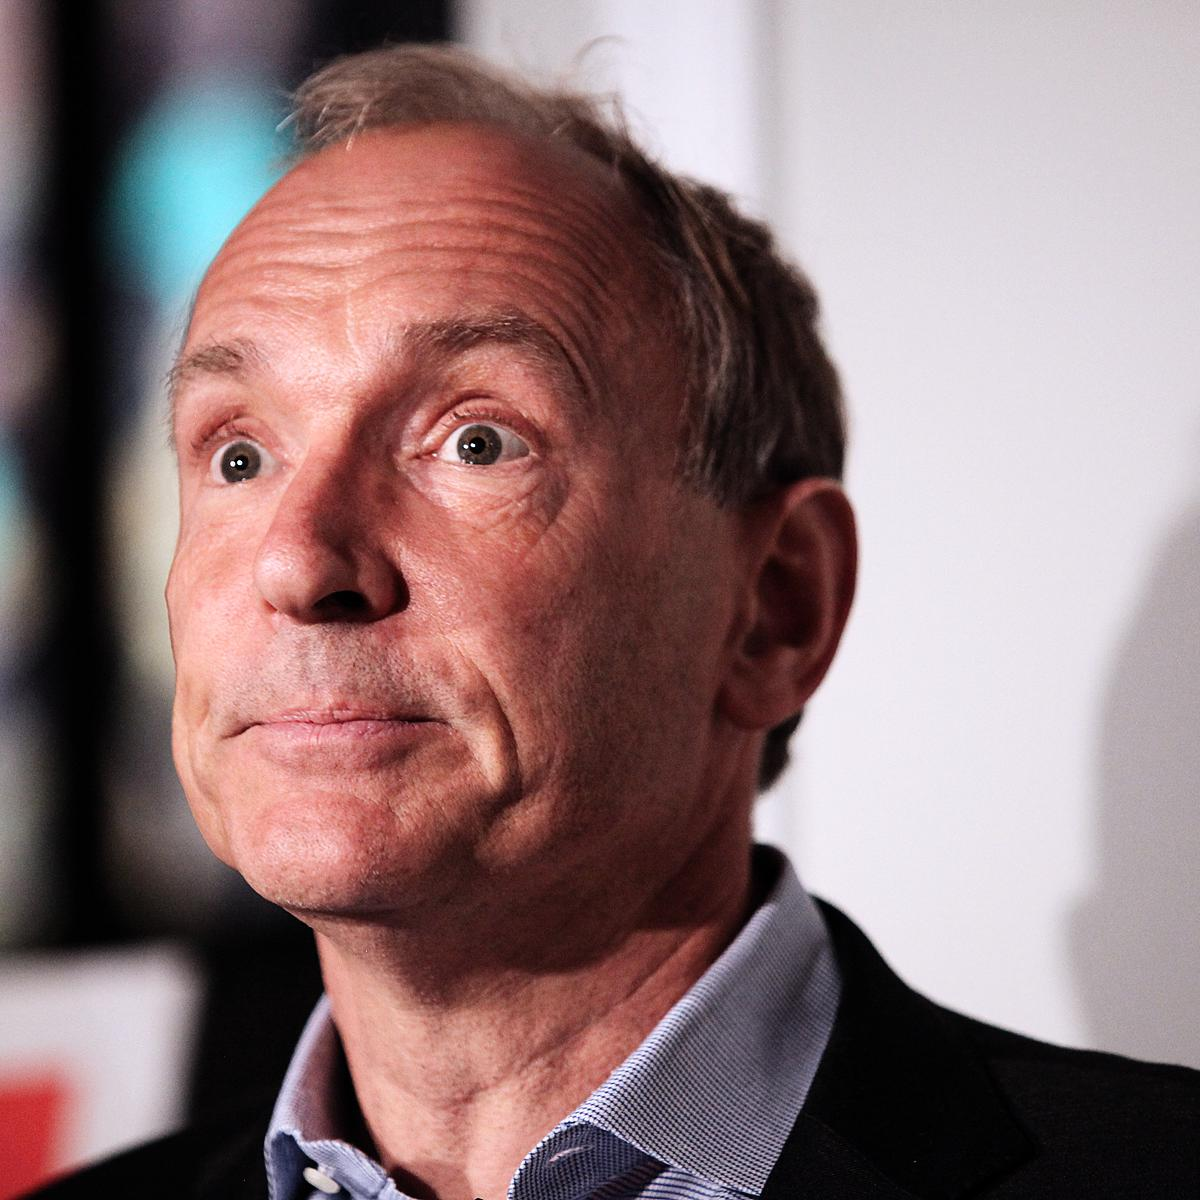 Sir Tim Berners-Lee for client Sapient Nitro by London photographer Julian Hanford